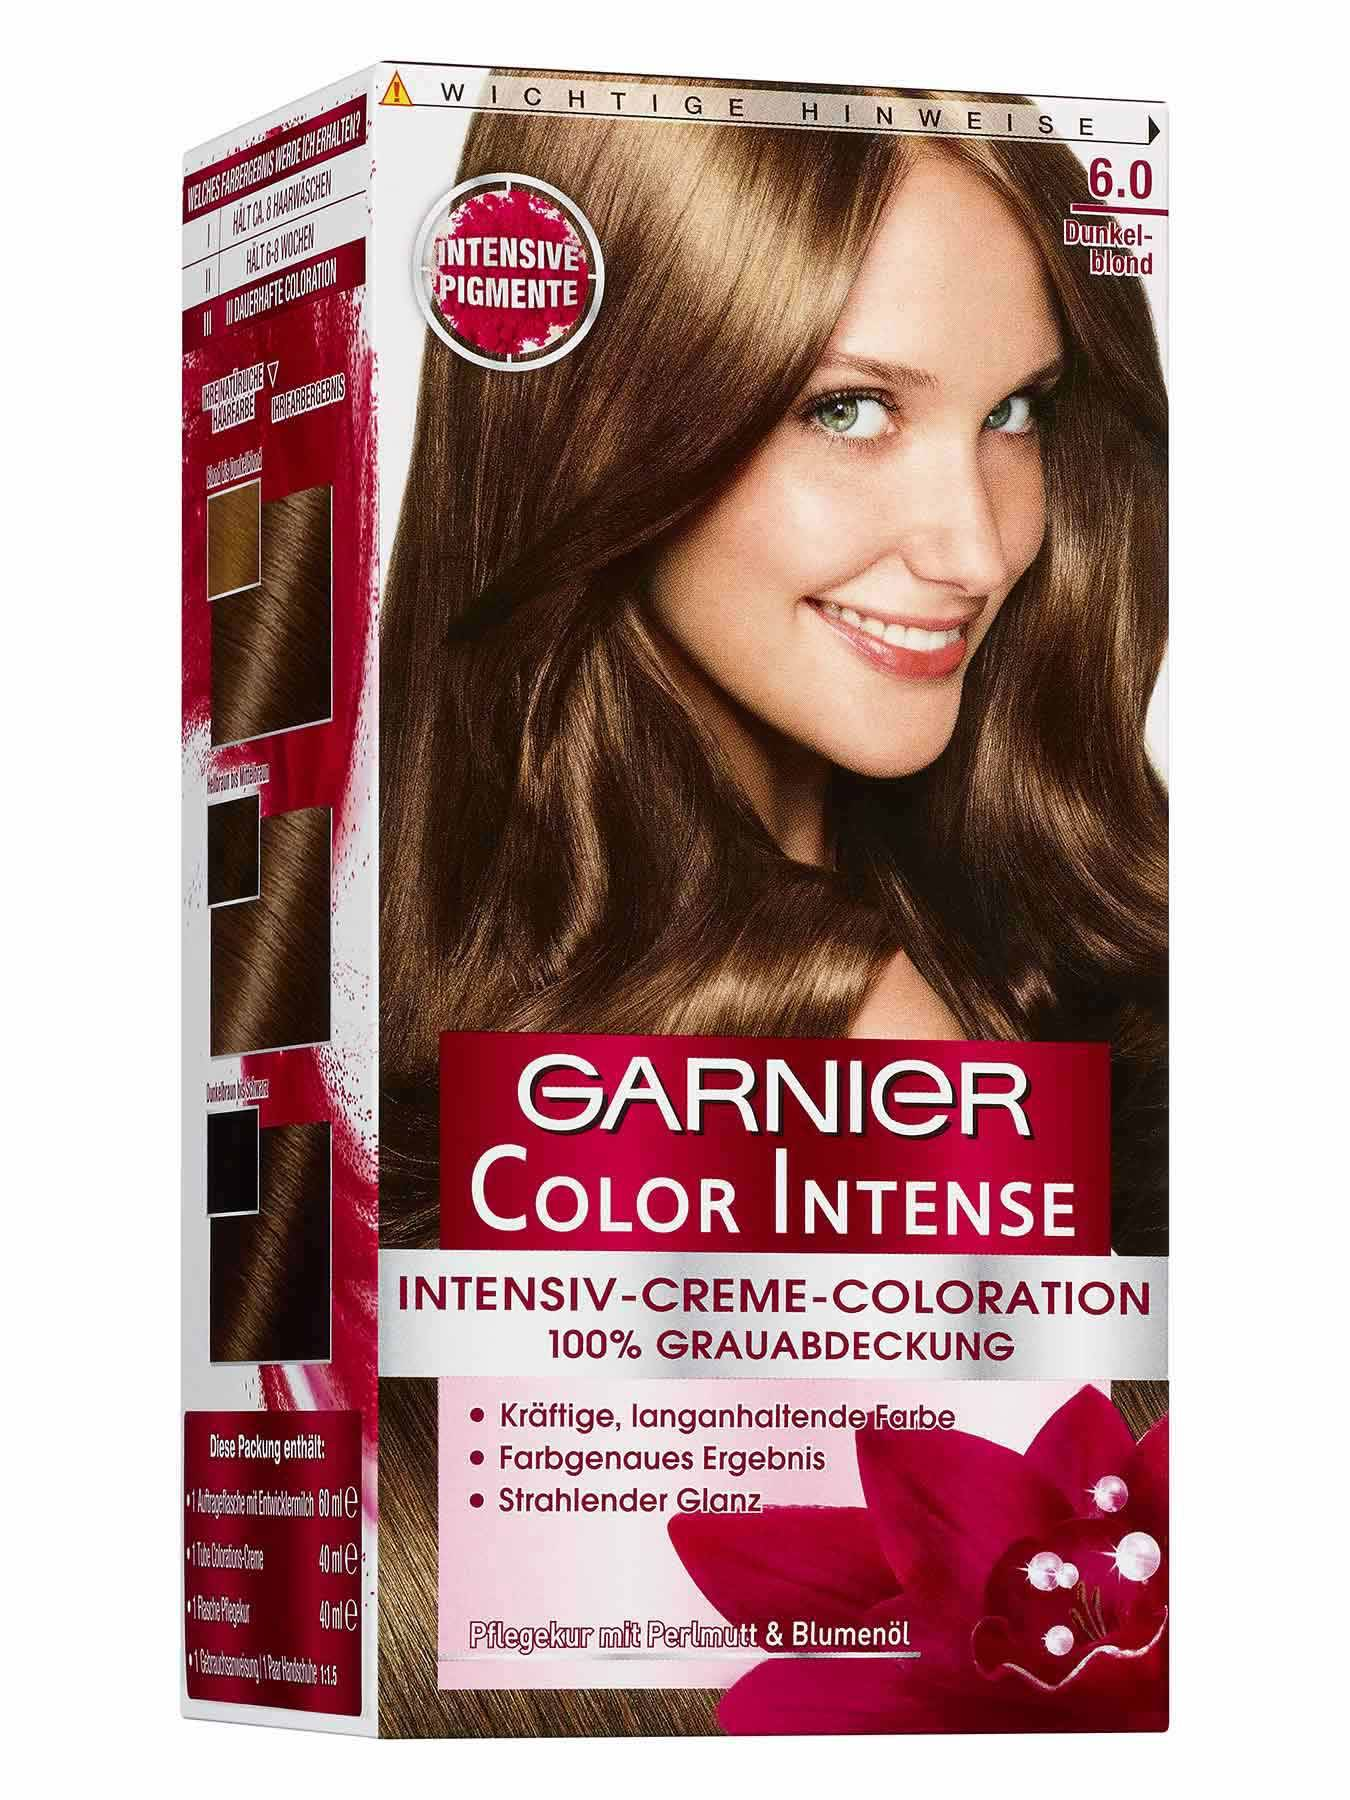 6-0-Dunkelblond-Intensiv-Creme-Coloration-Color-Intense-1Stk-Vorderseite-Garnier-Deutschland-gr